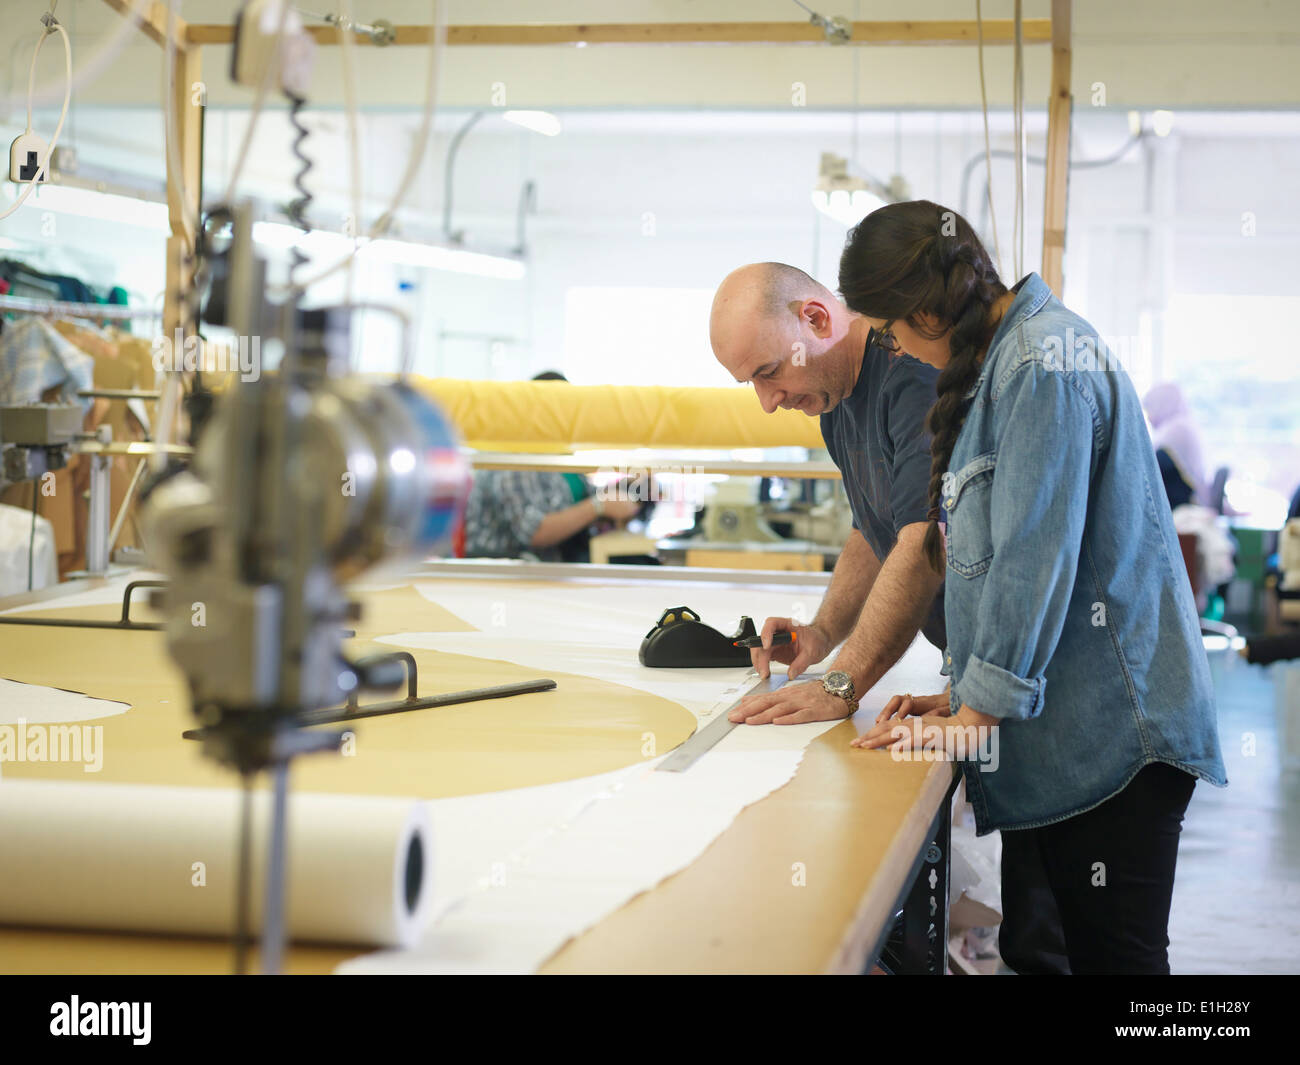 Garment workers training in clothing factory - Stock Image